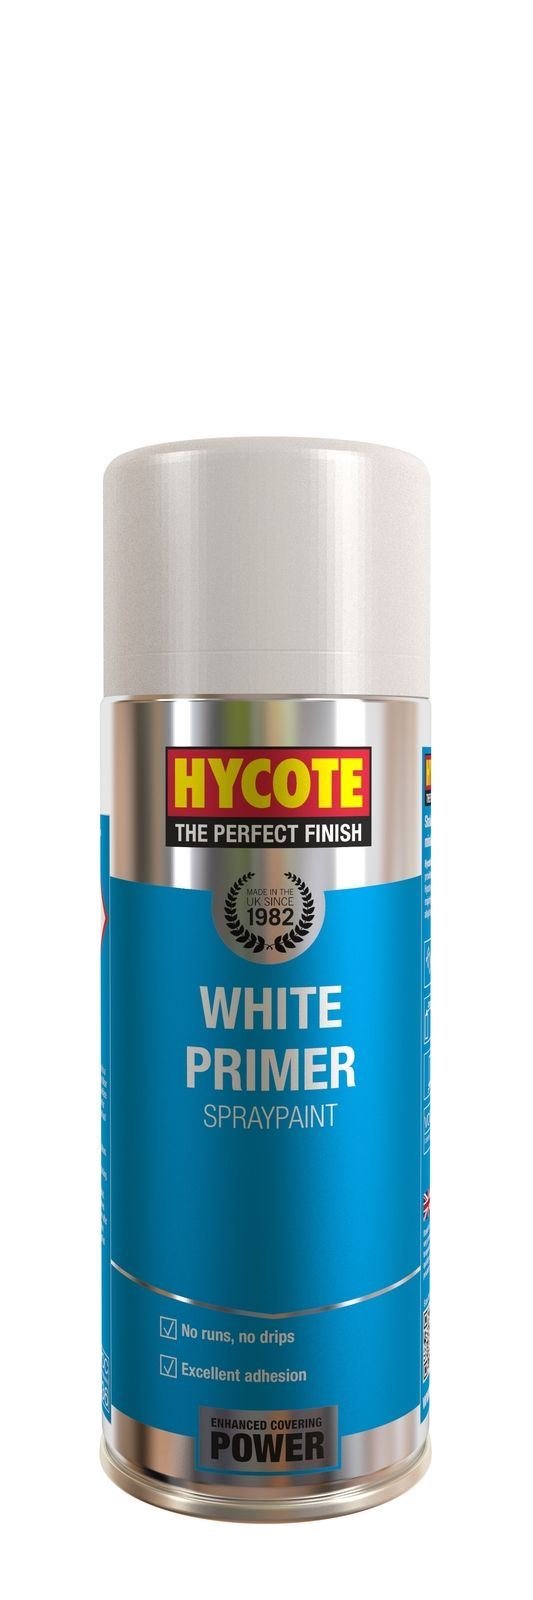 Hycote White Primer - 400ml